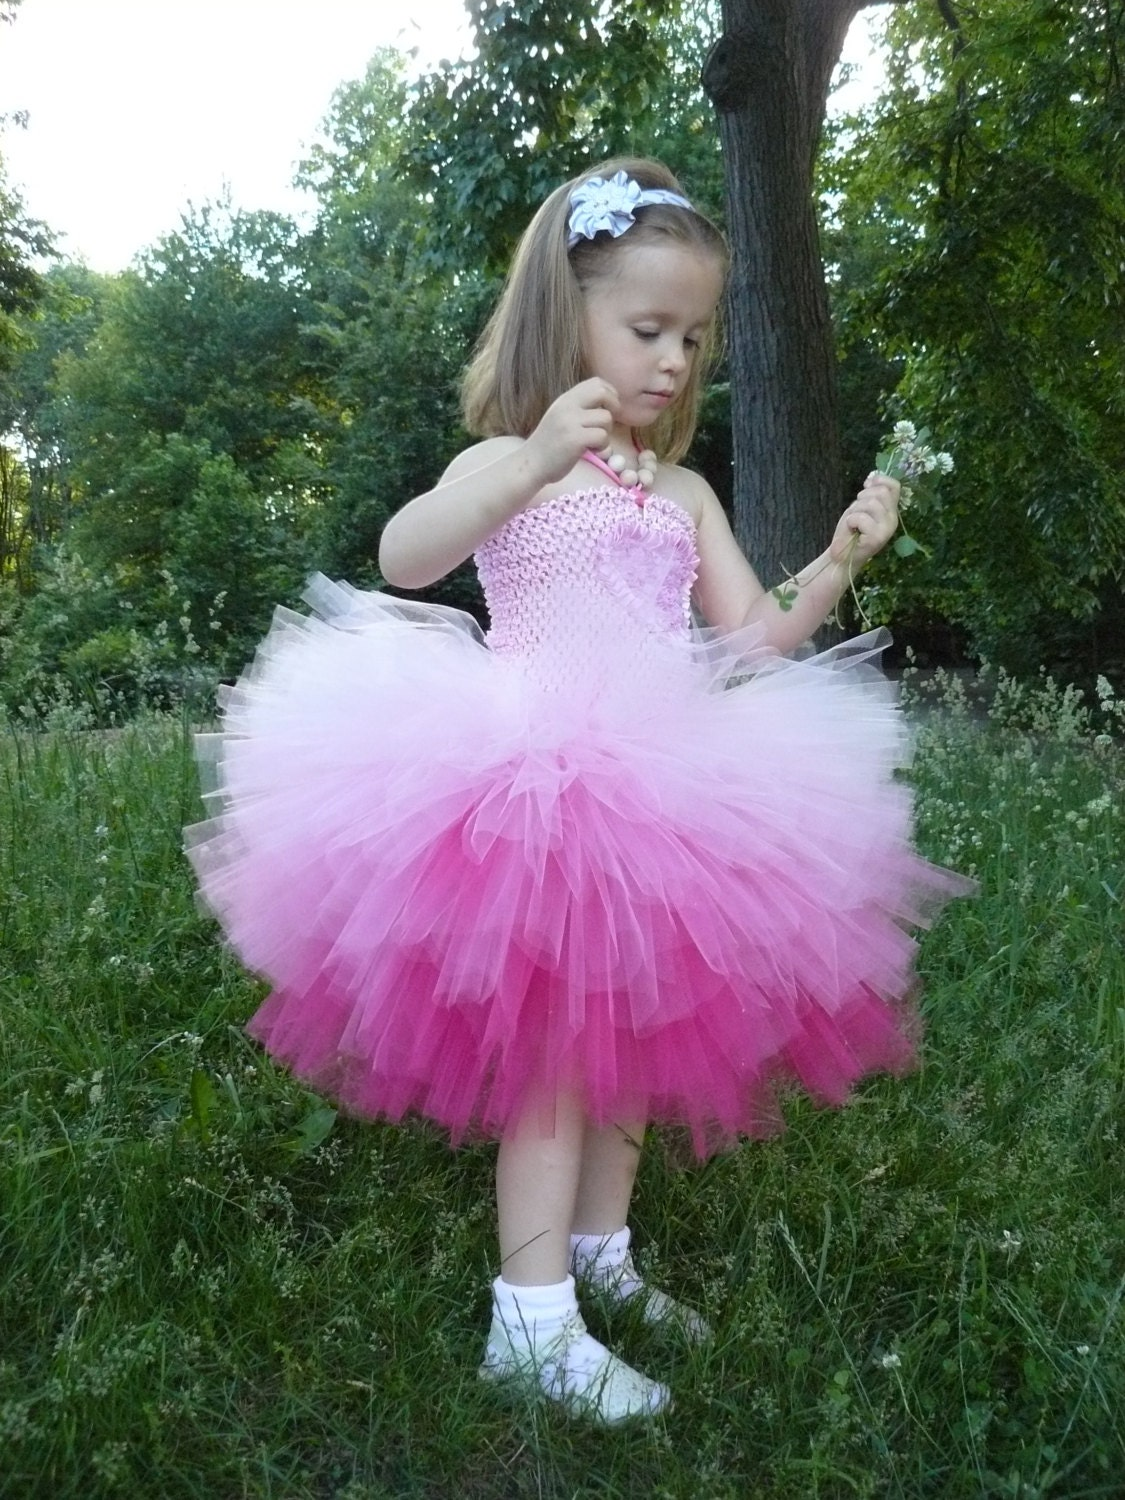 Popular items for pink tulle dress on Etsy